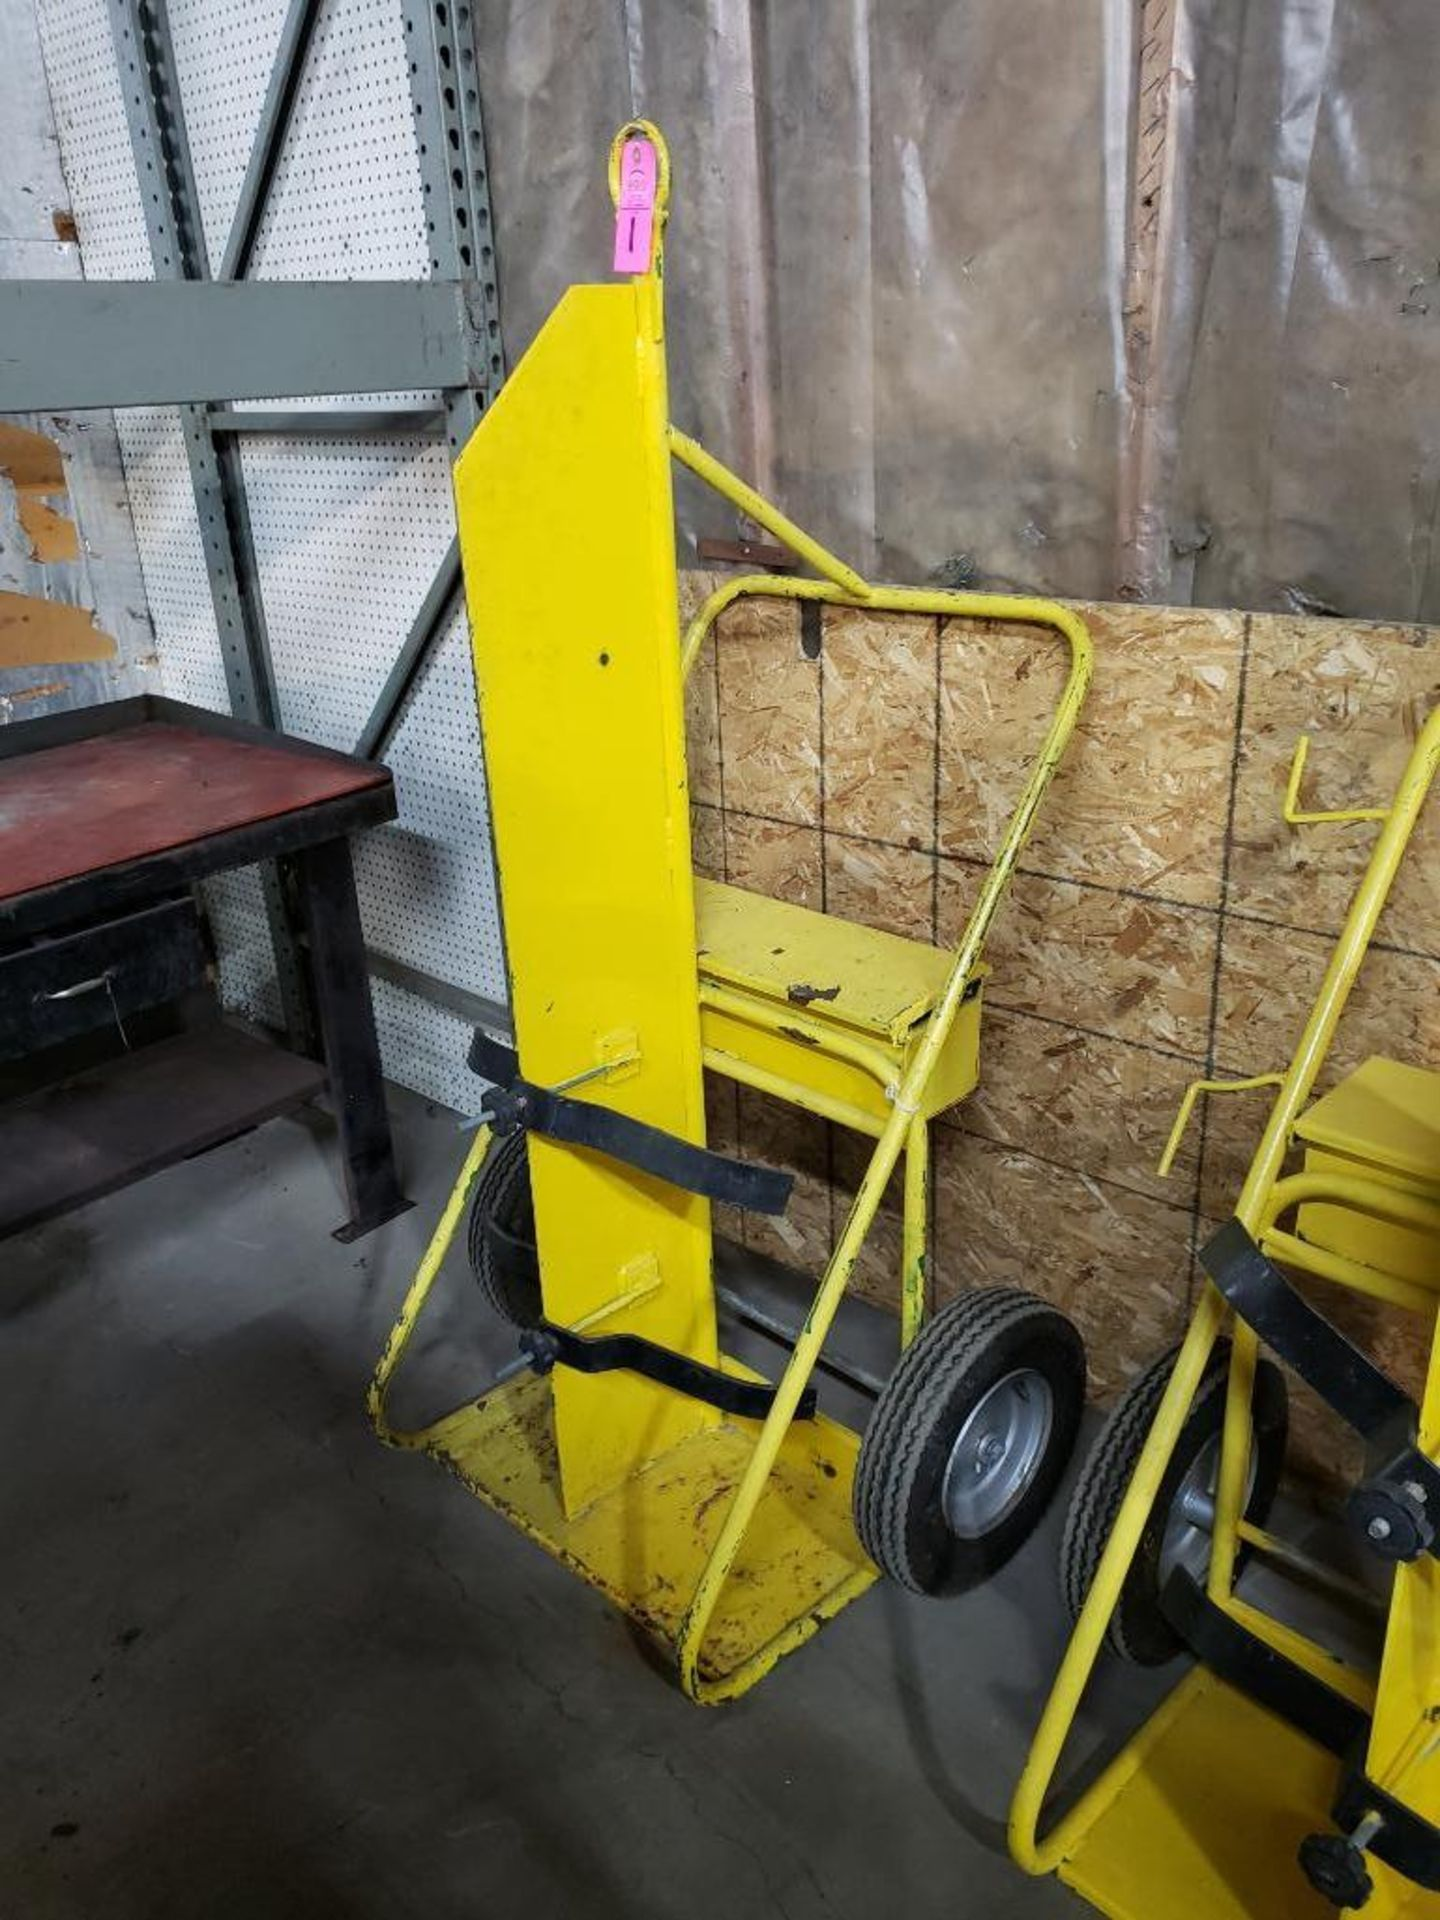 Lot 1 - Heavy duty factory torch cart with pneumatic tires.